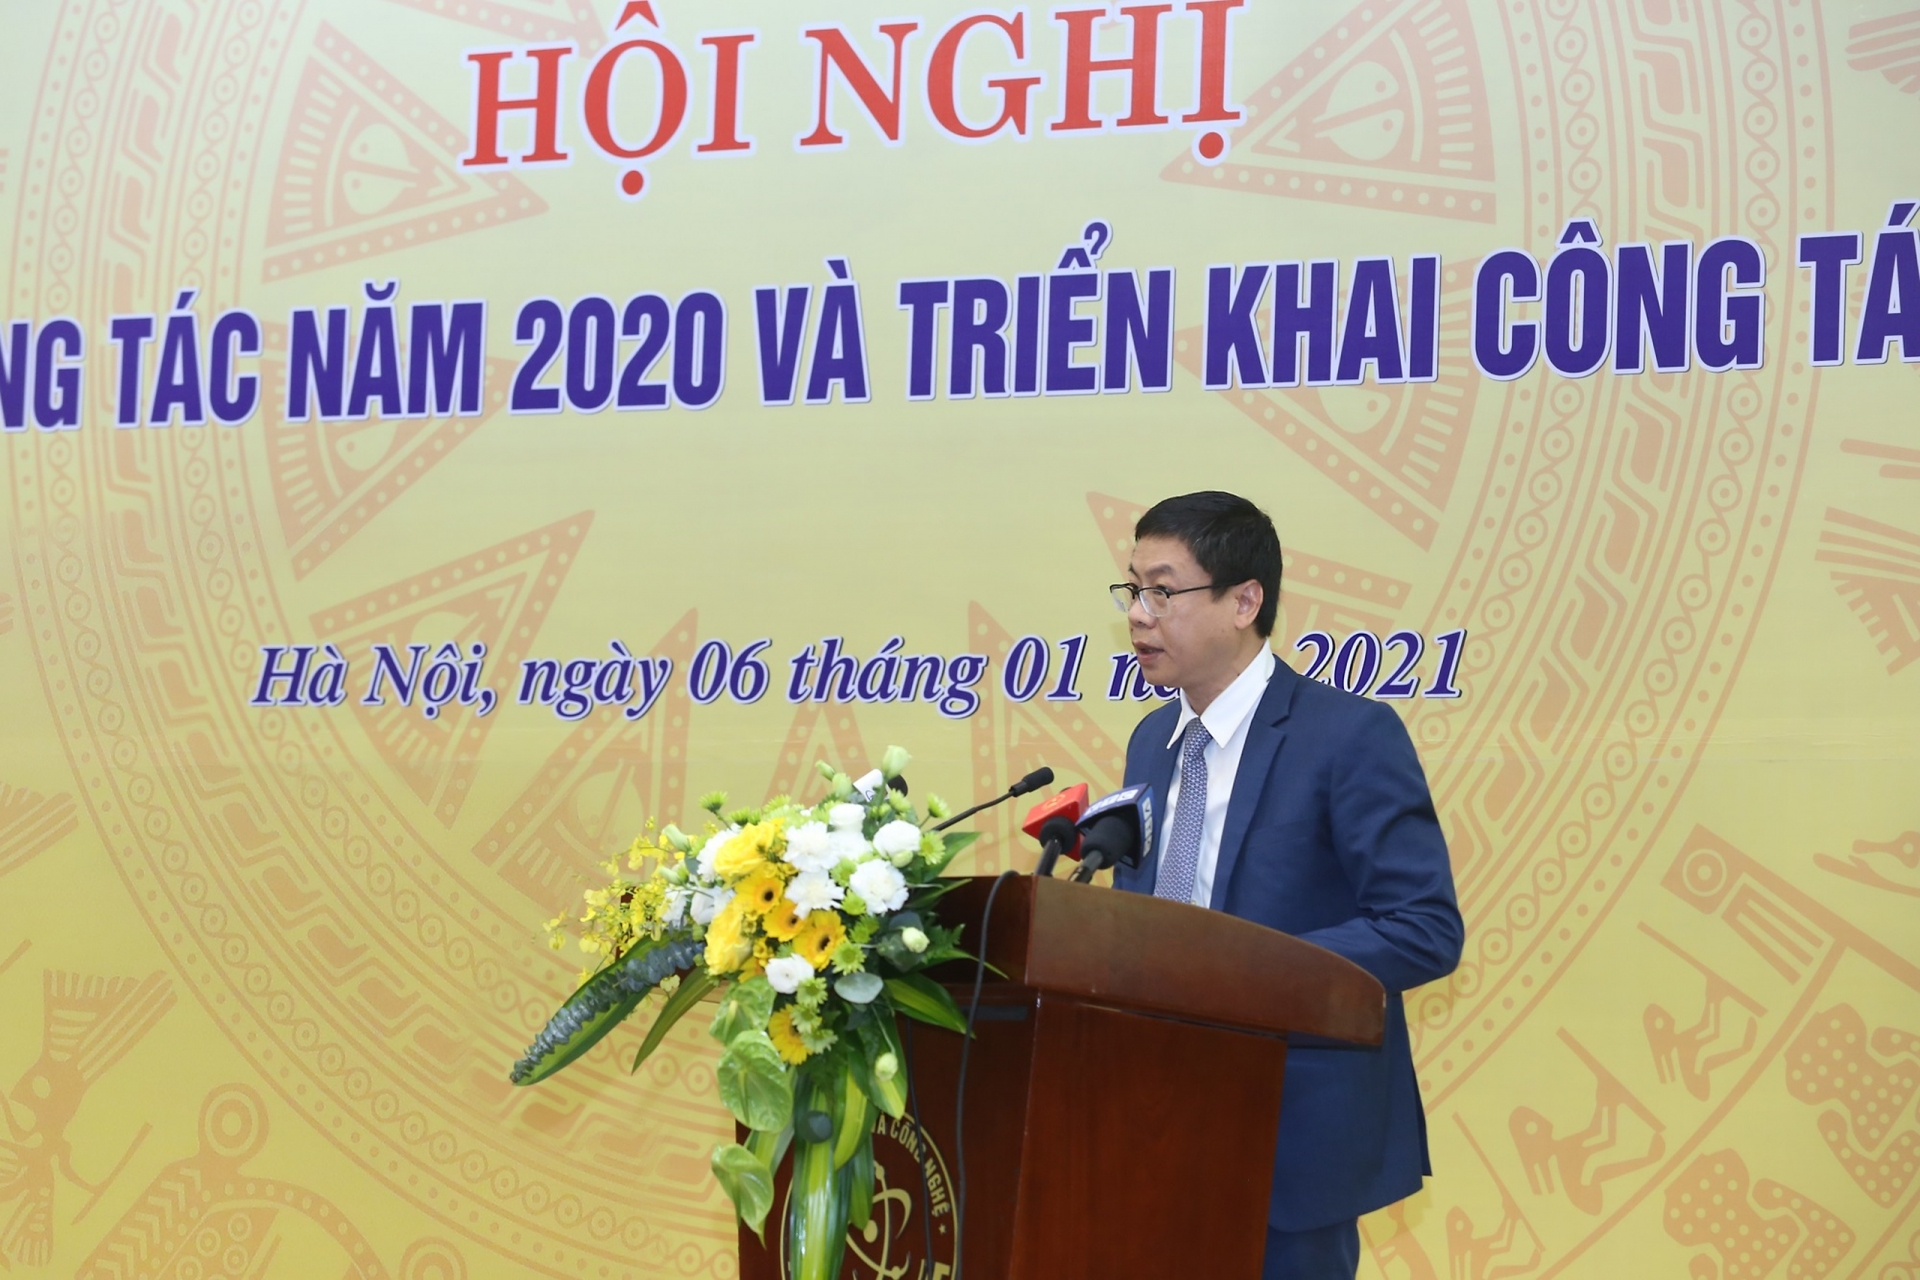 More sci-tech development plans to be built in 2021